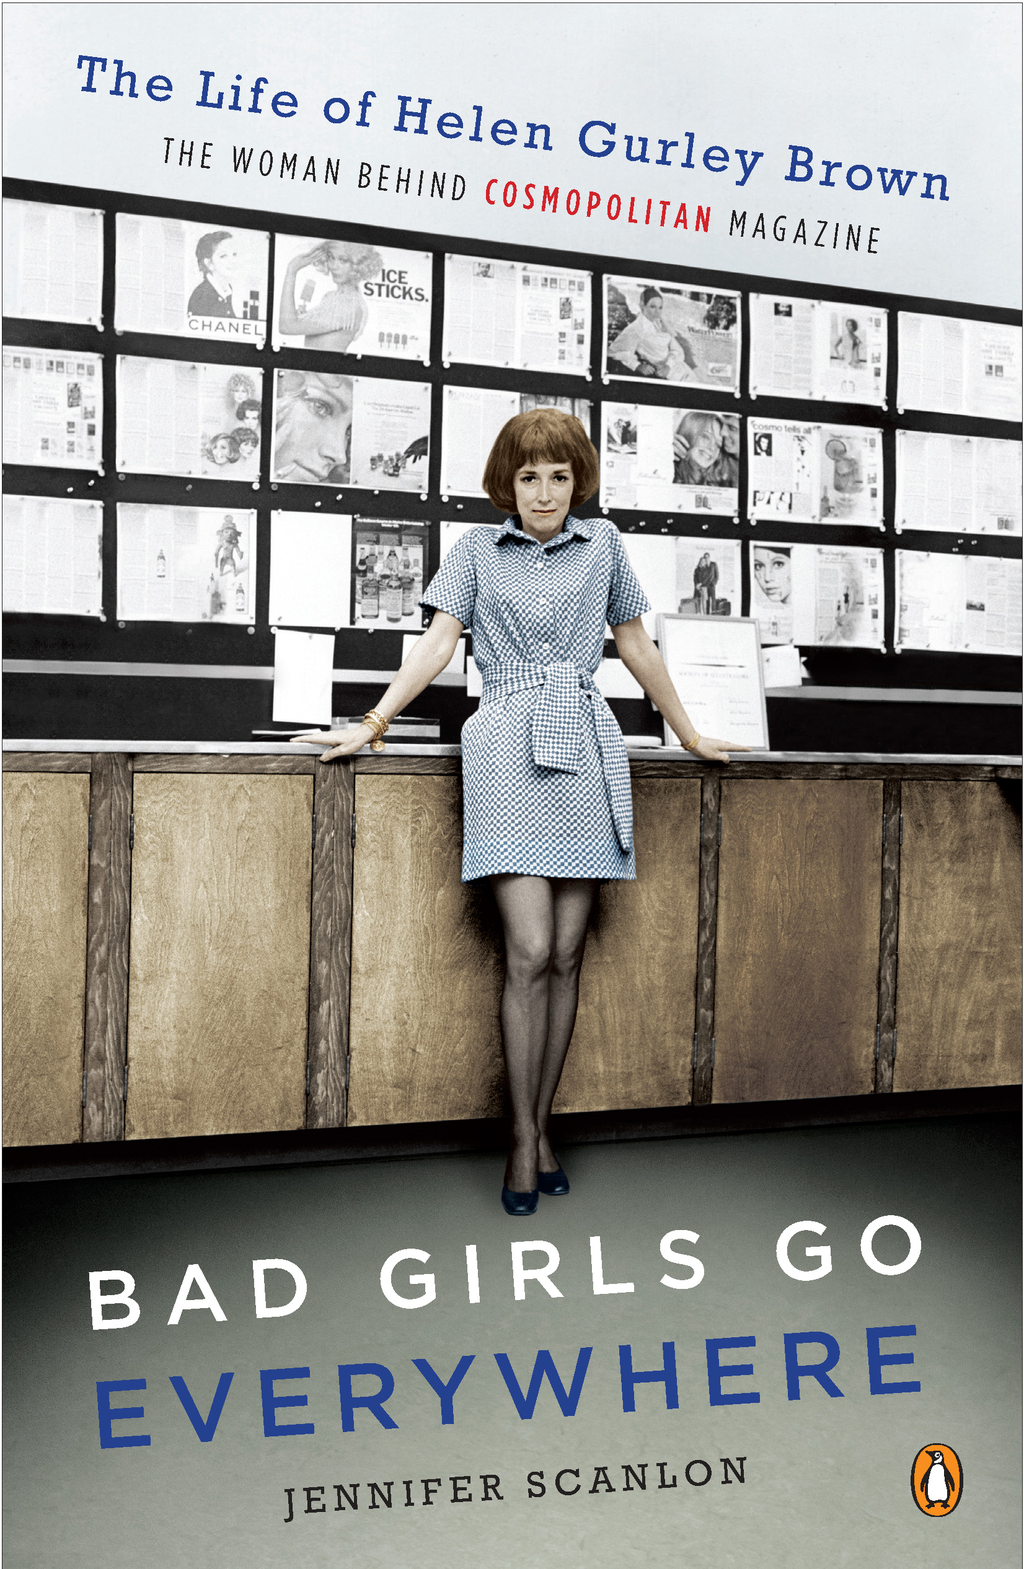 Bad Girls Go Everywhere: The Life of Helen Gurley Brown, the Woman Behind Cosmopolitan Magazine By: Jennifer Scanlon